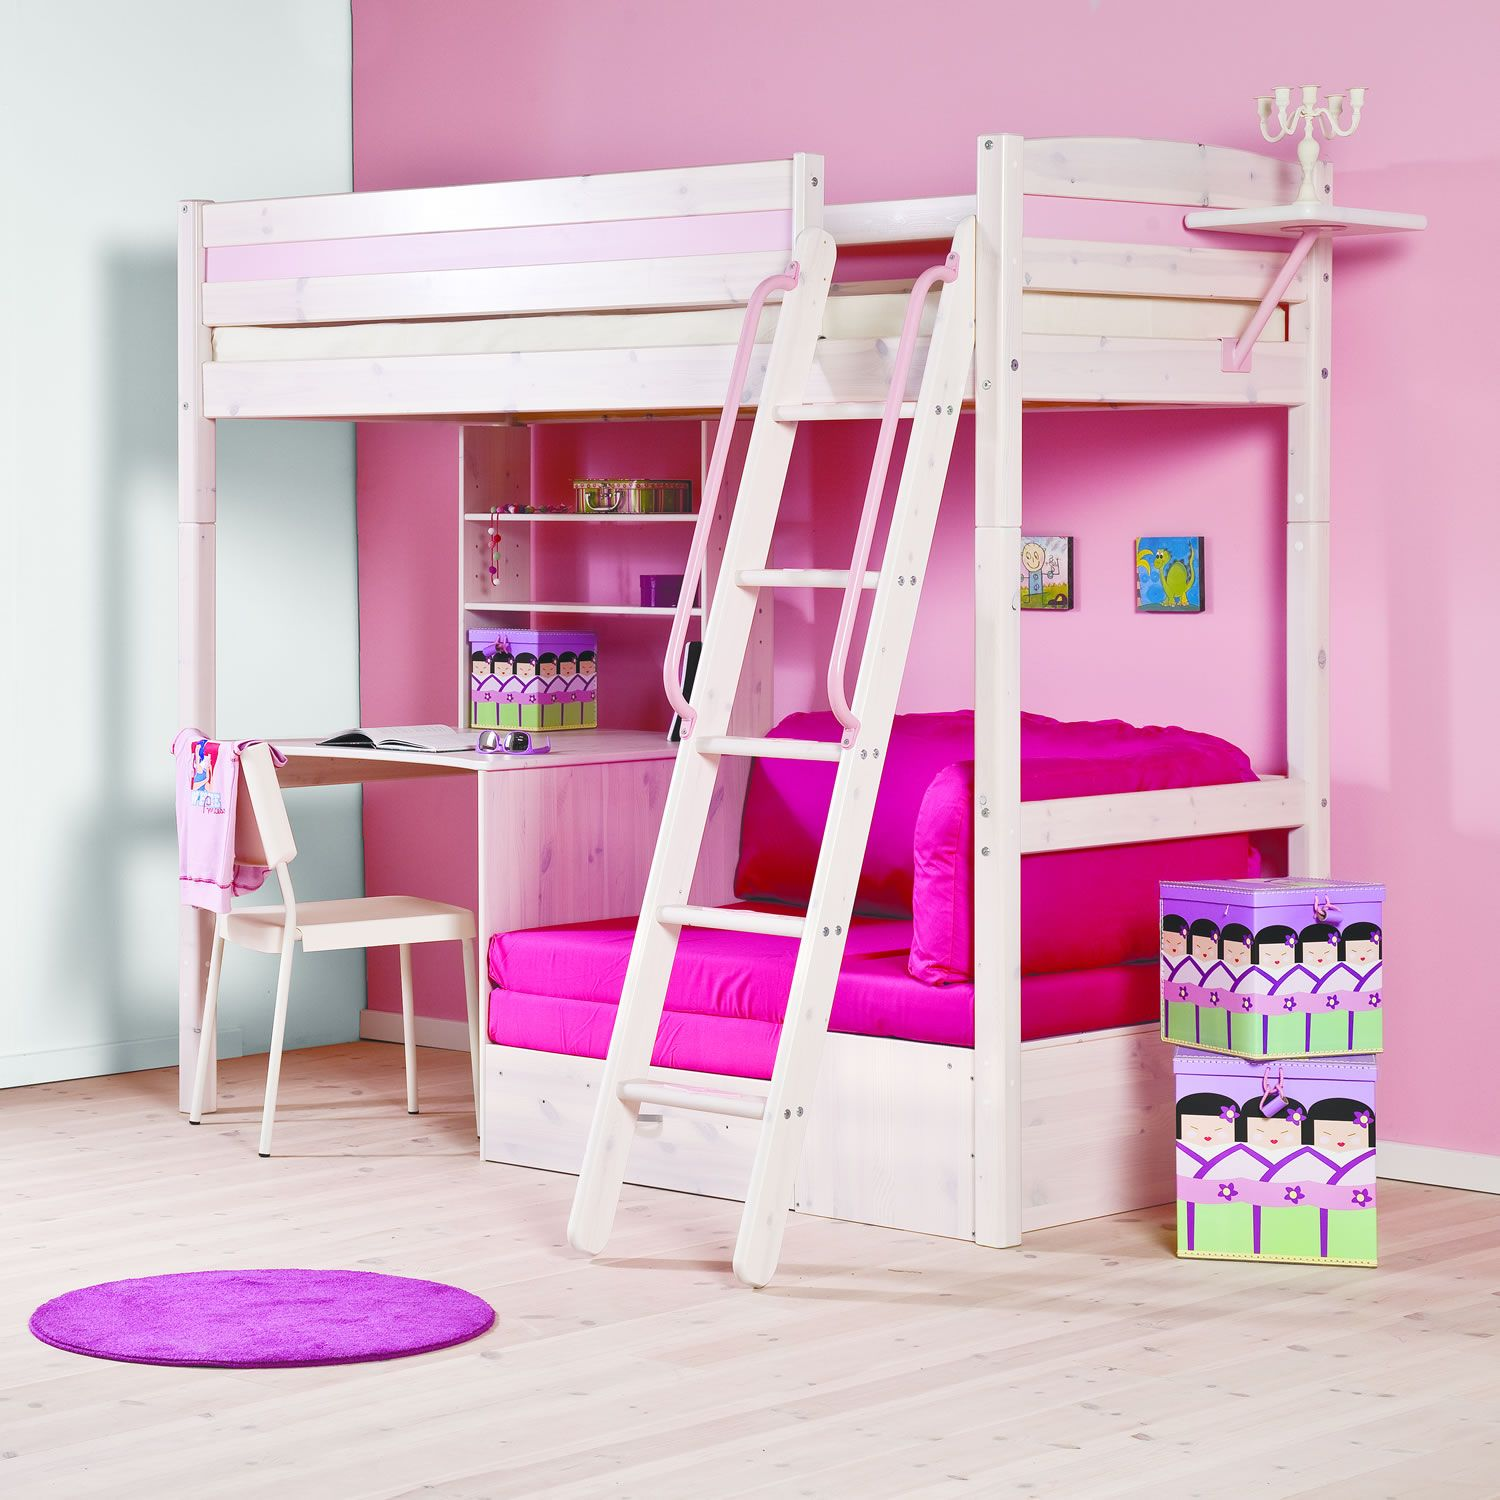 Thuka trendy 29 high sleeper next day delivery thuka for High sleeper bed